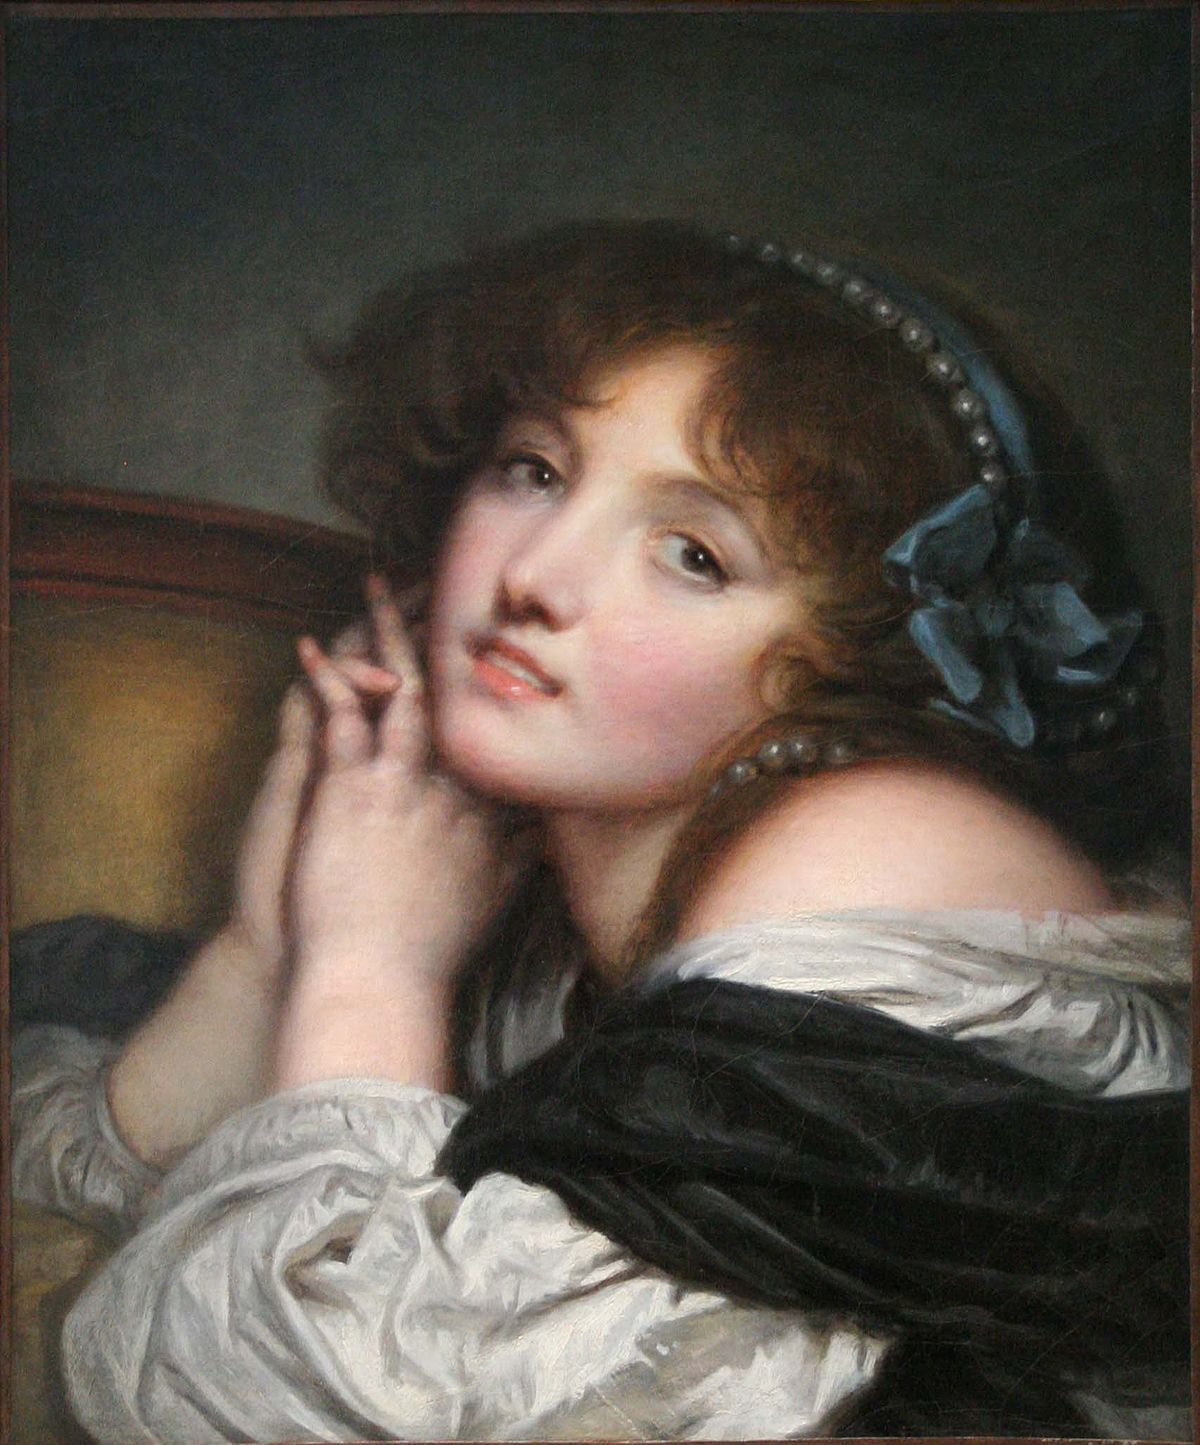 http://upload.wikimedia.org/wikipedia/commons/thumb/c/c8/Greuze-jeune_fille_aux_mains_jointes.JPG/1200px-Greuze-jeune_fille_aux_mains_jointes.JPG